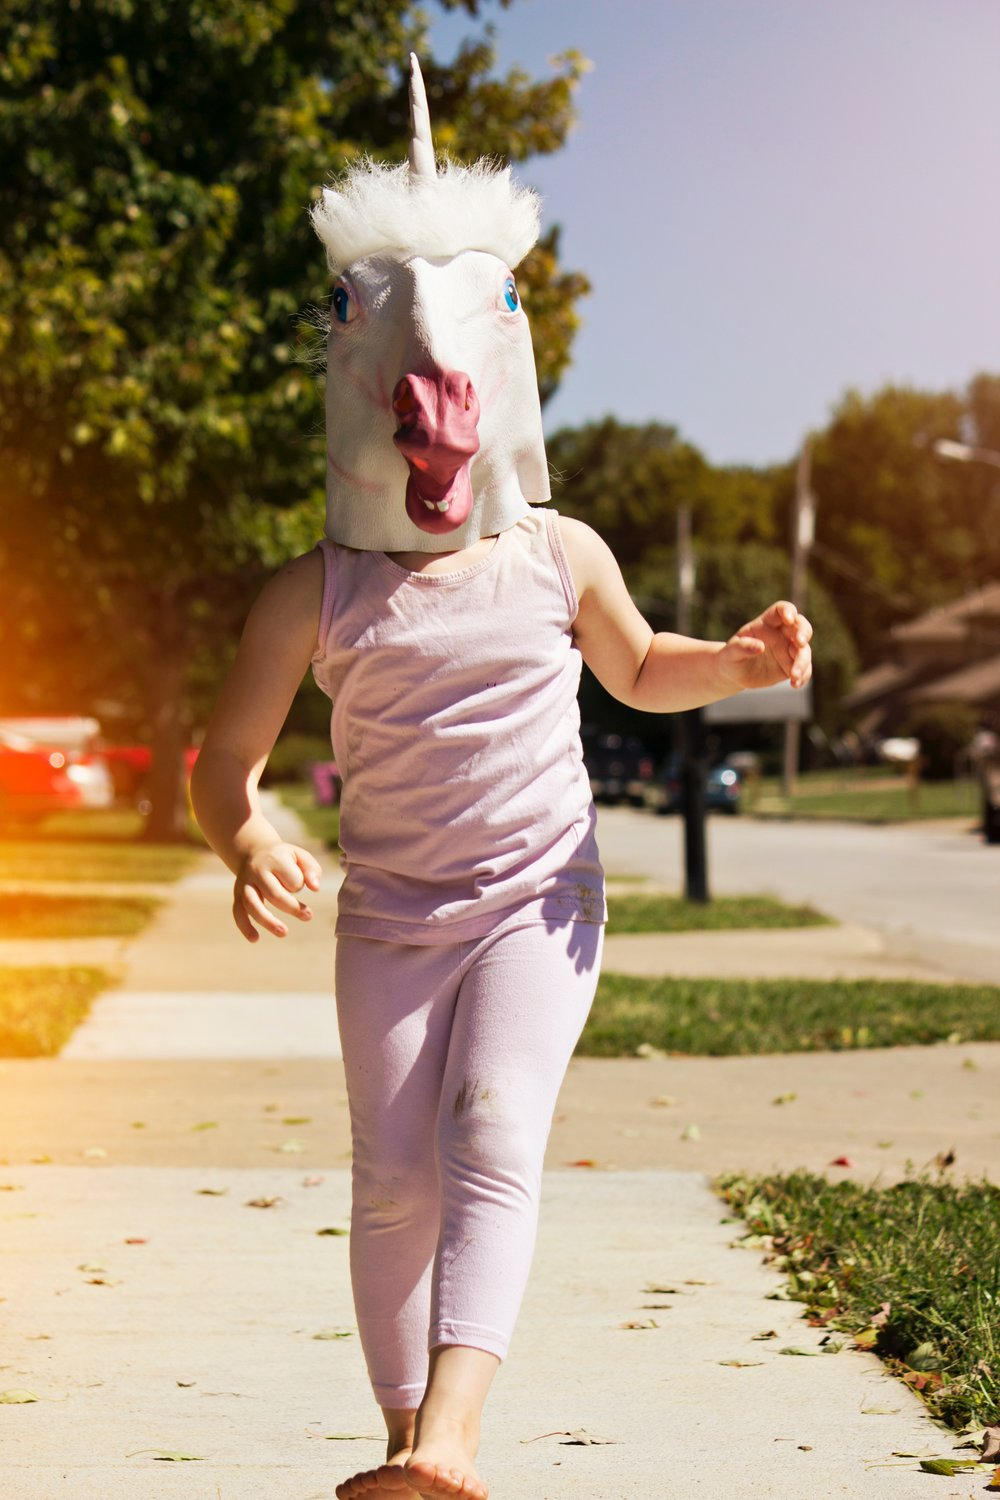 Who says unicorns aren't real?